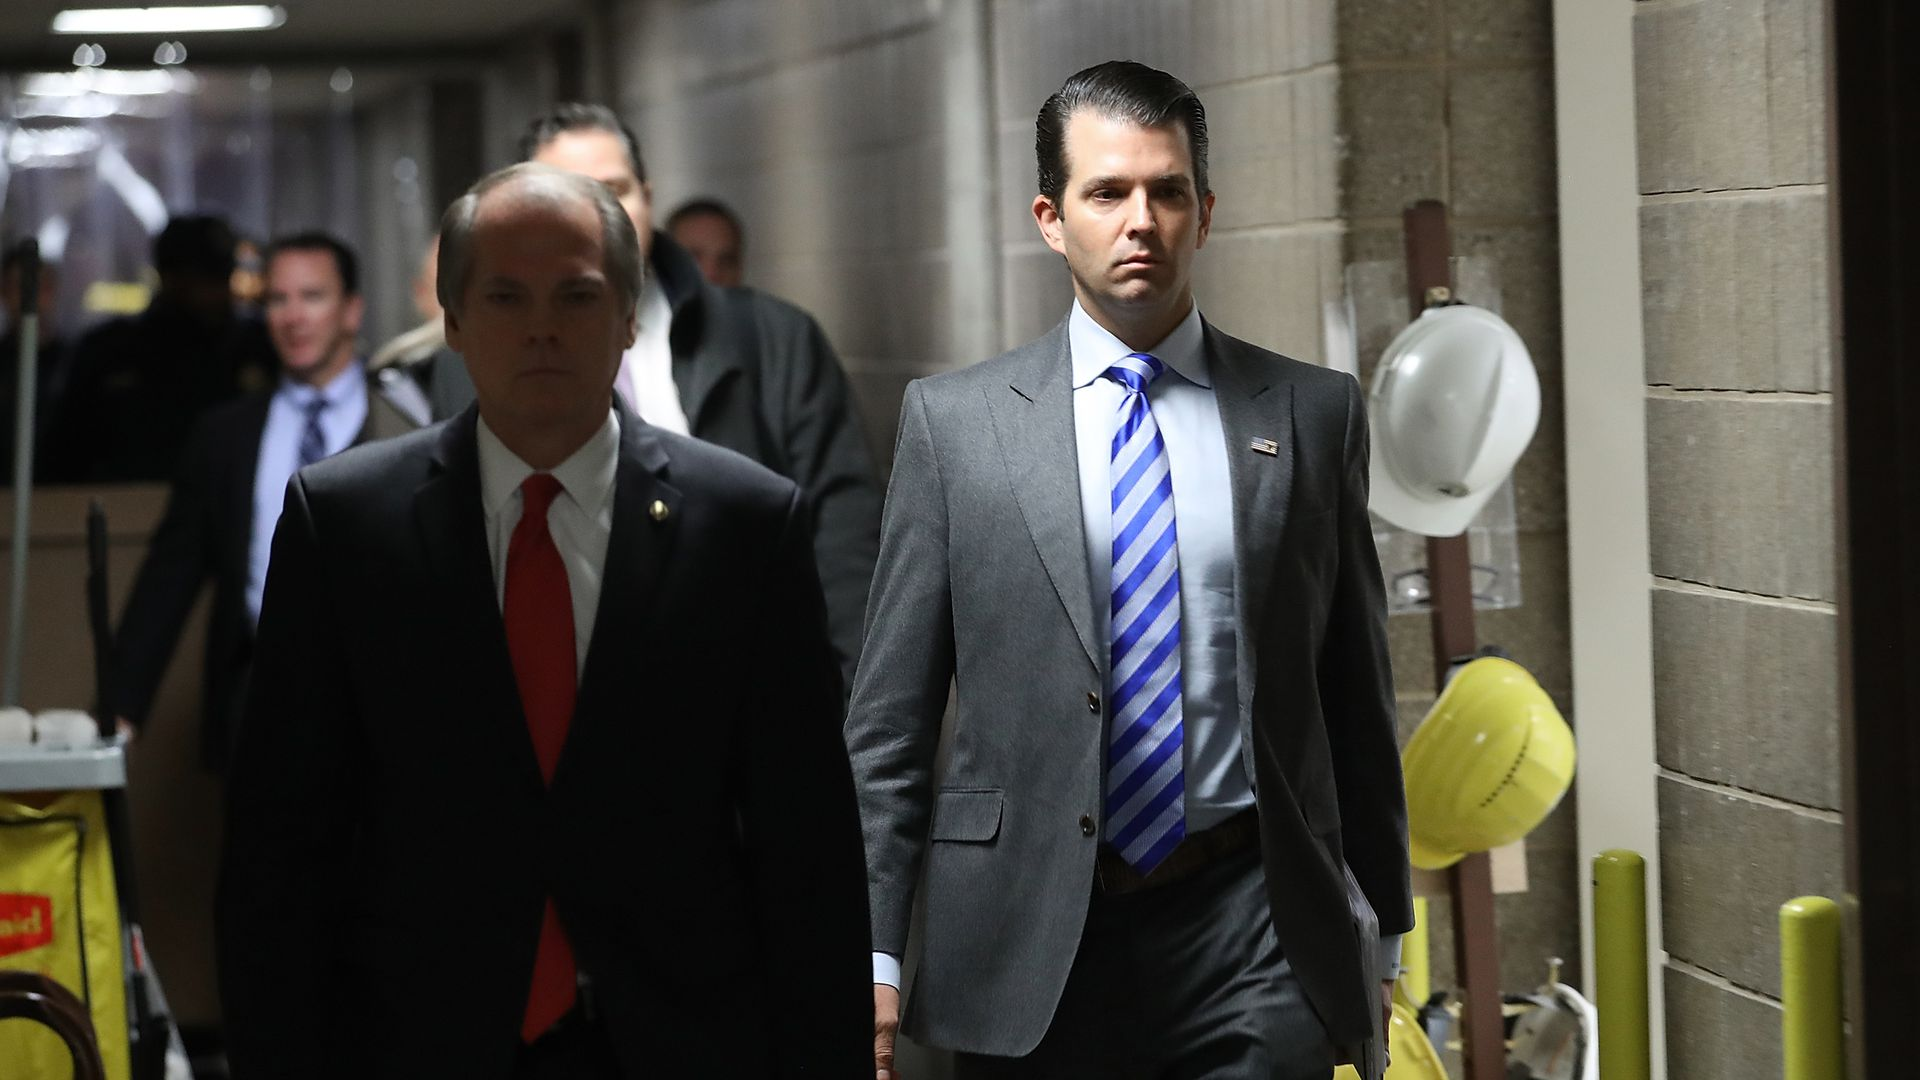 Donald Trump Jr. arrives at the Senate Hart Office Building for a closed door meeting with Senate Intelligence Committee